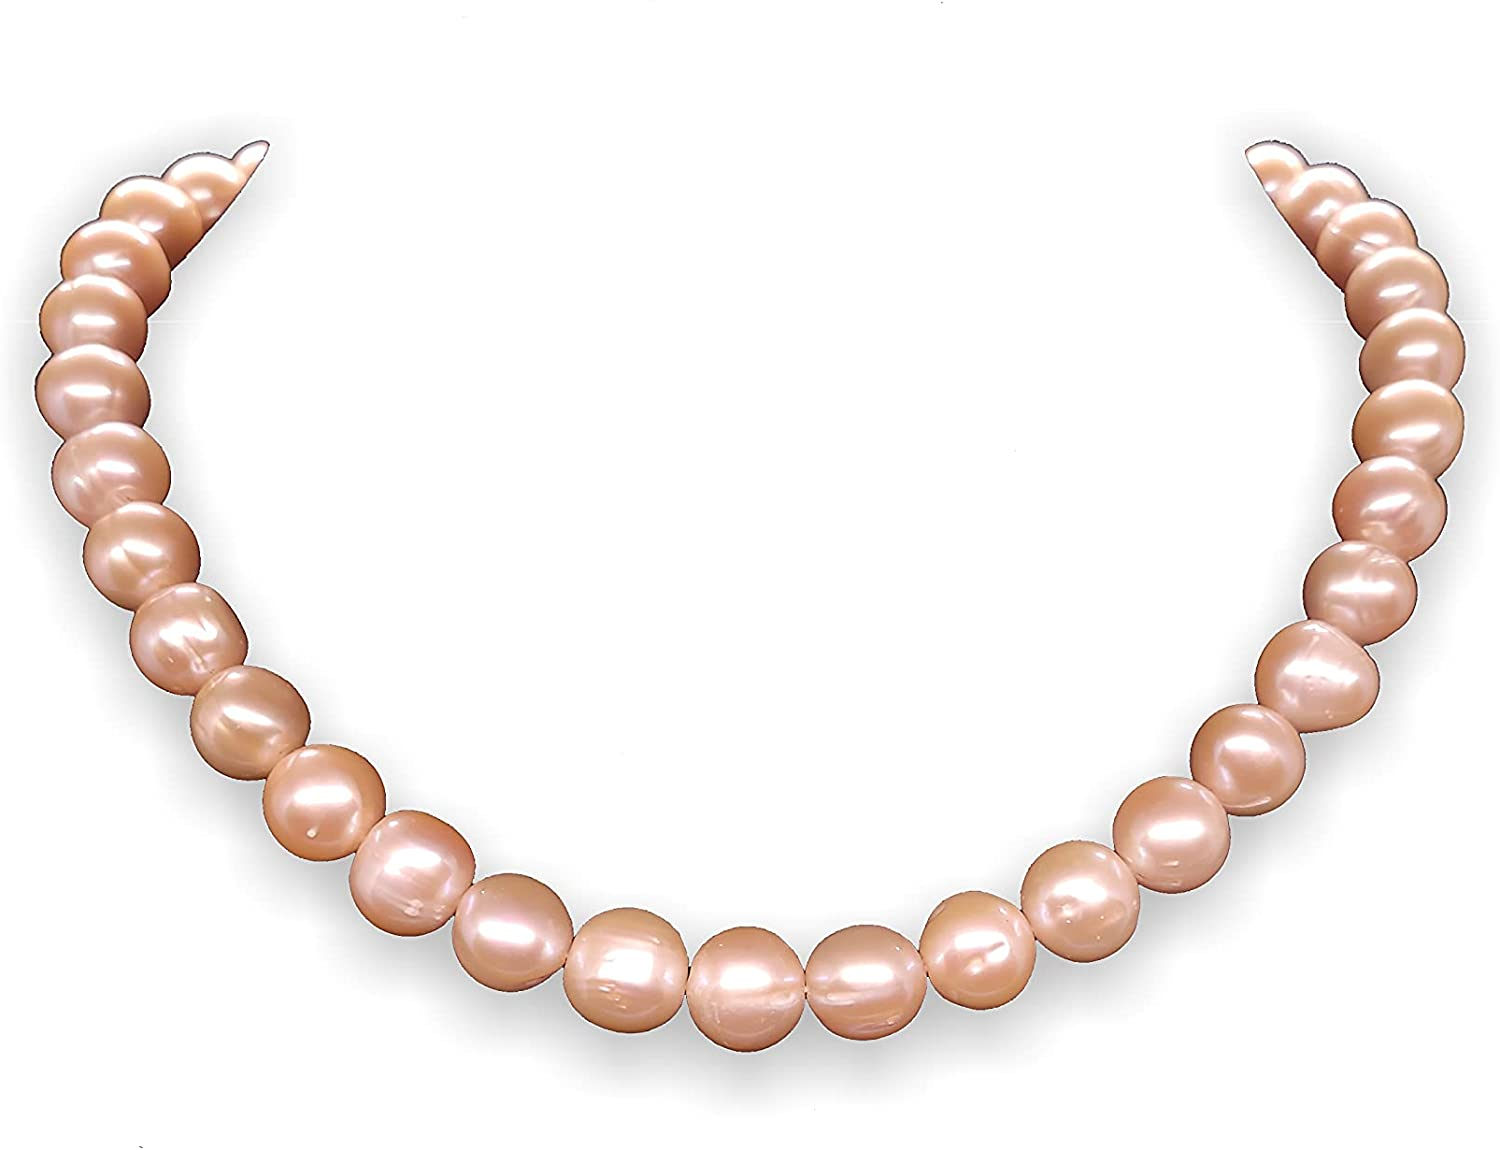 Genuine Freshwater Cultured Pearls Strand for Necklace or Bracelets (15.5in., 9 to 10mm Pearls, Natural Faint Pink, No Clasp)